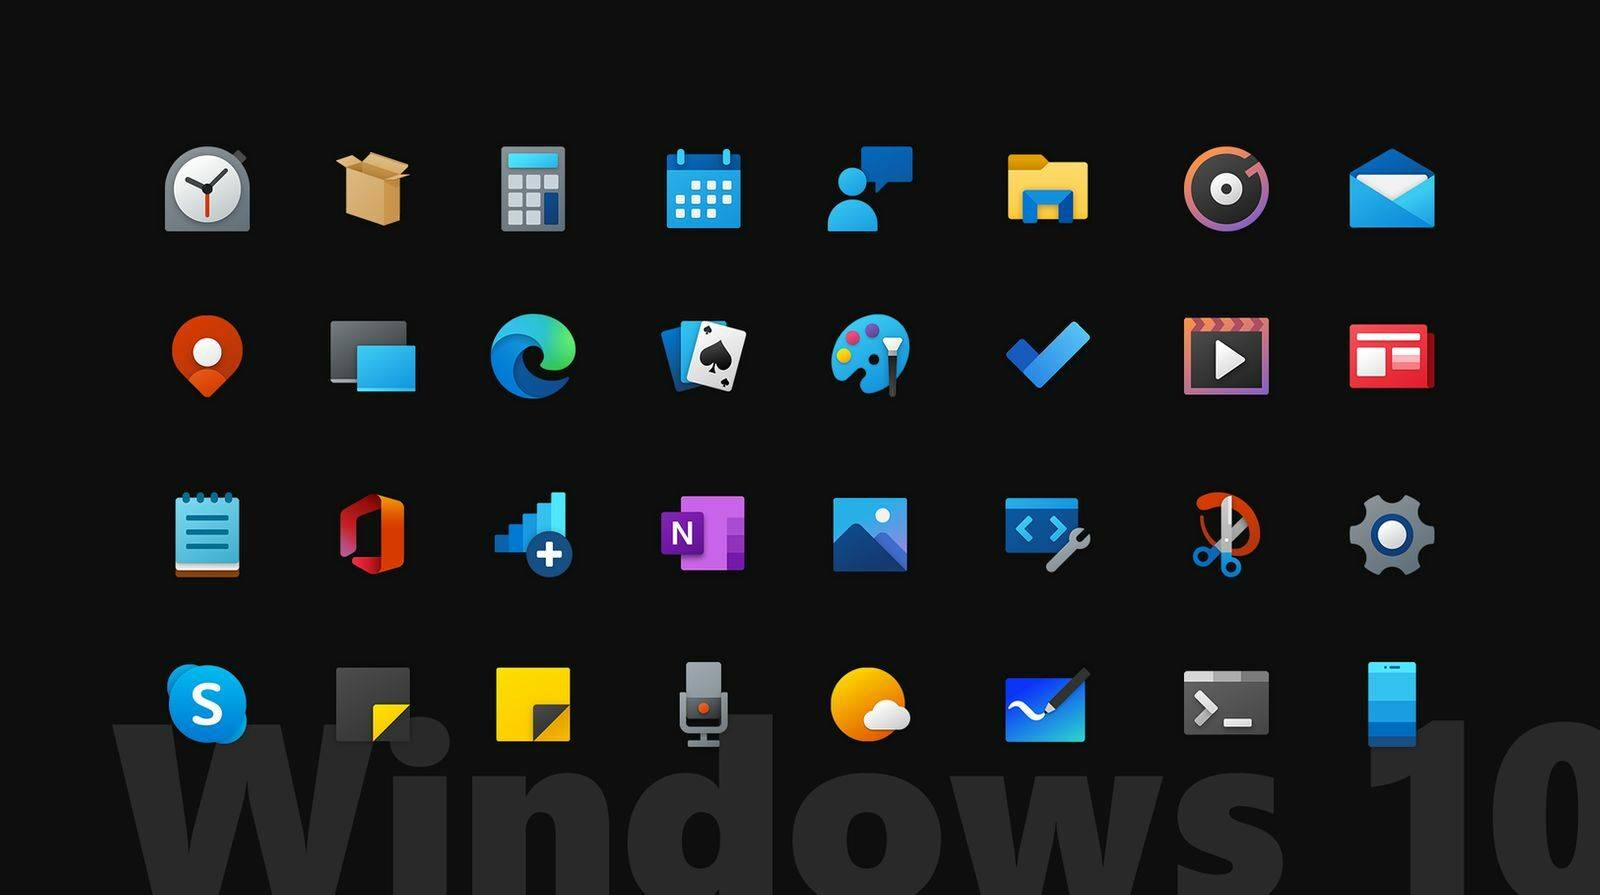 Iconic - Official 2020 Windows 10(X) - icons png [DOWNLOAD FREE]